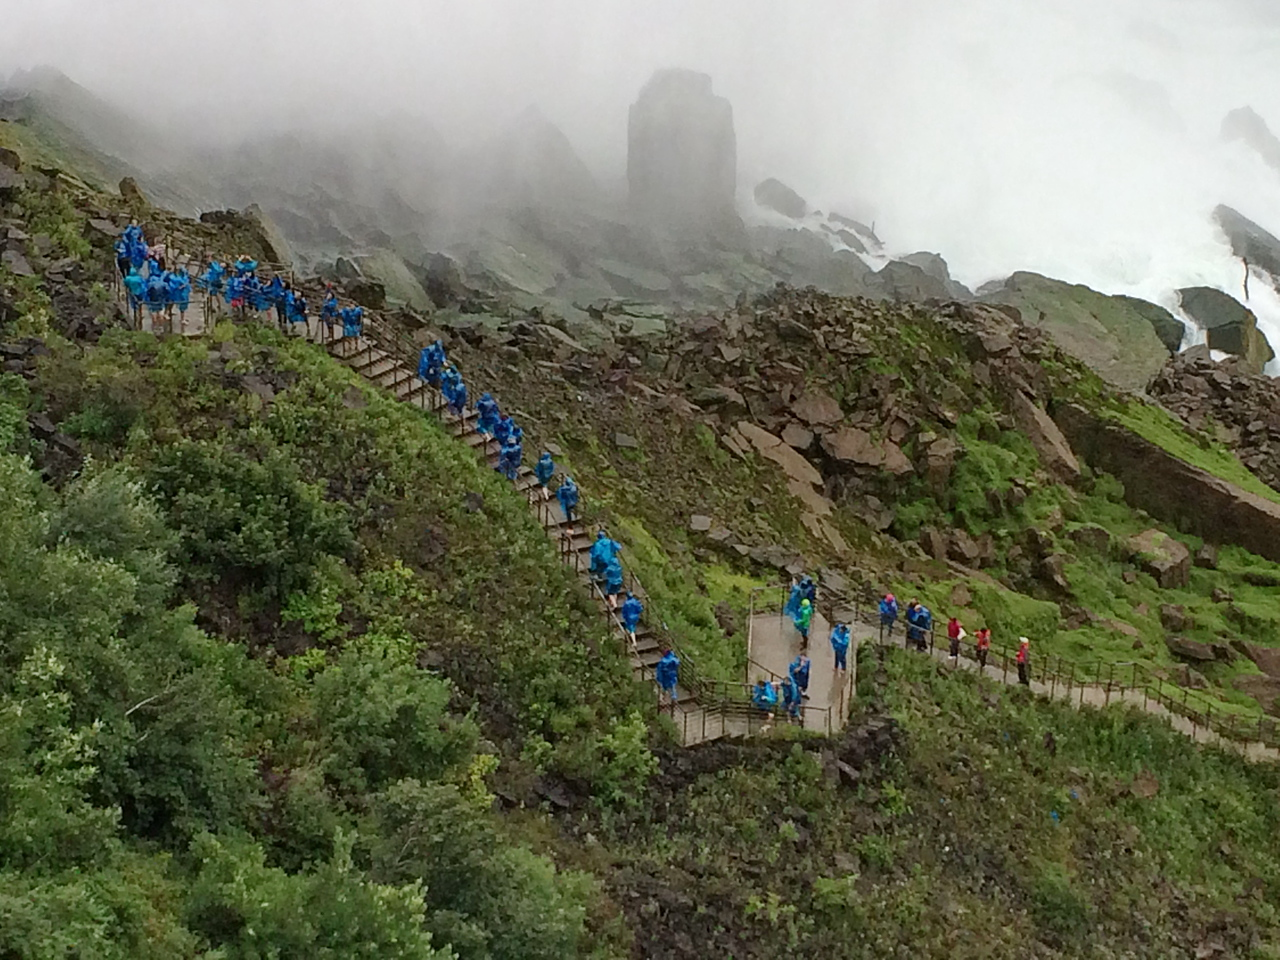 Rocky Slope into the Mist